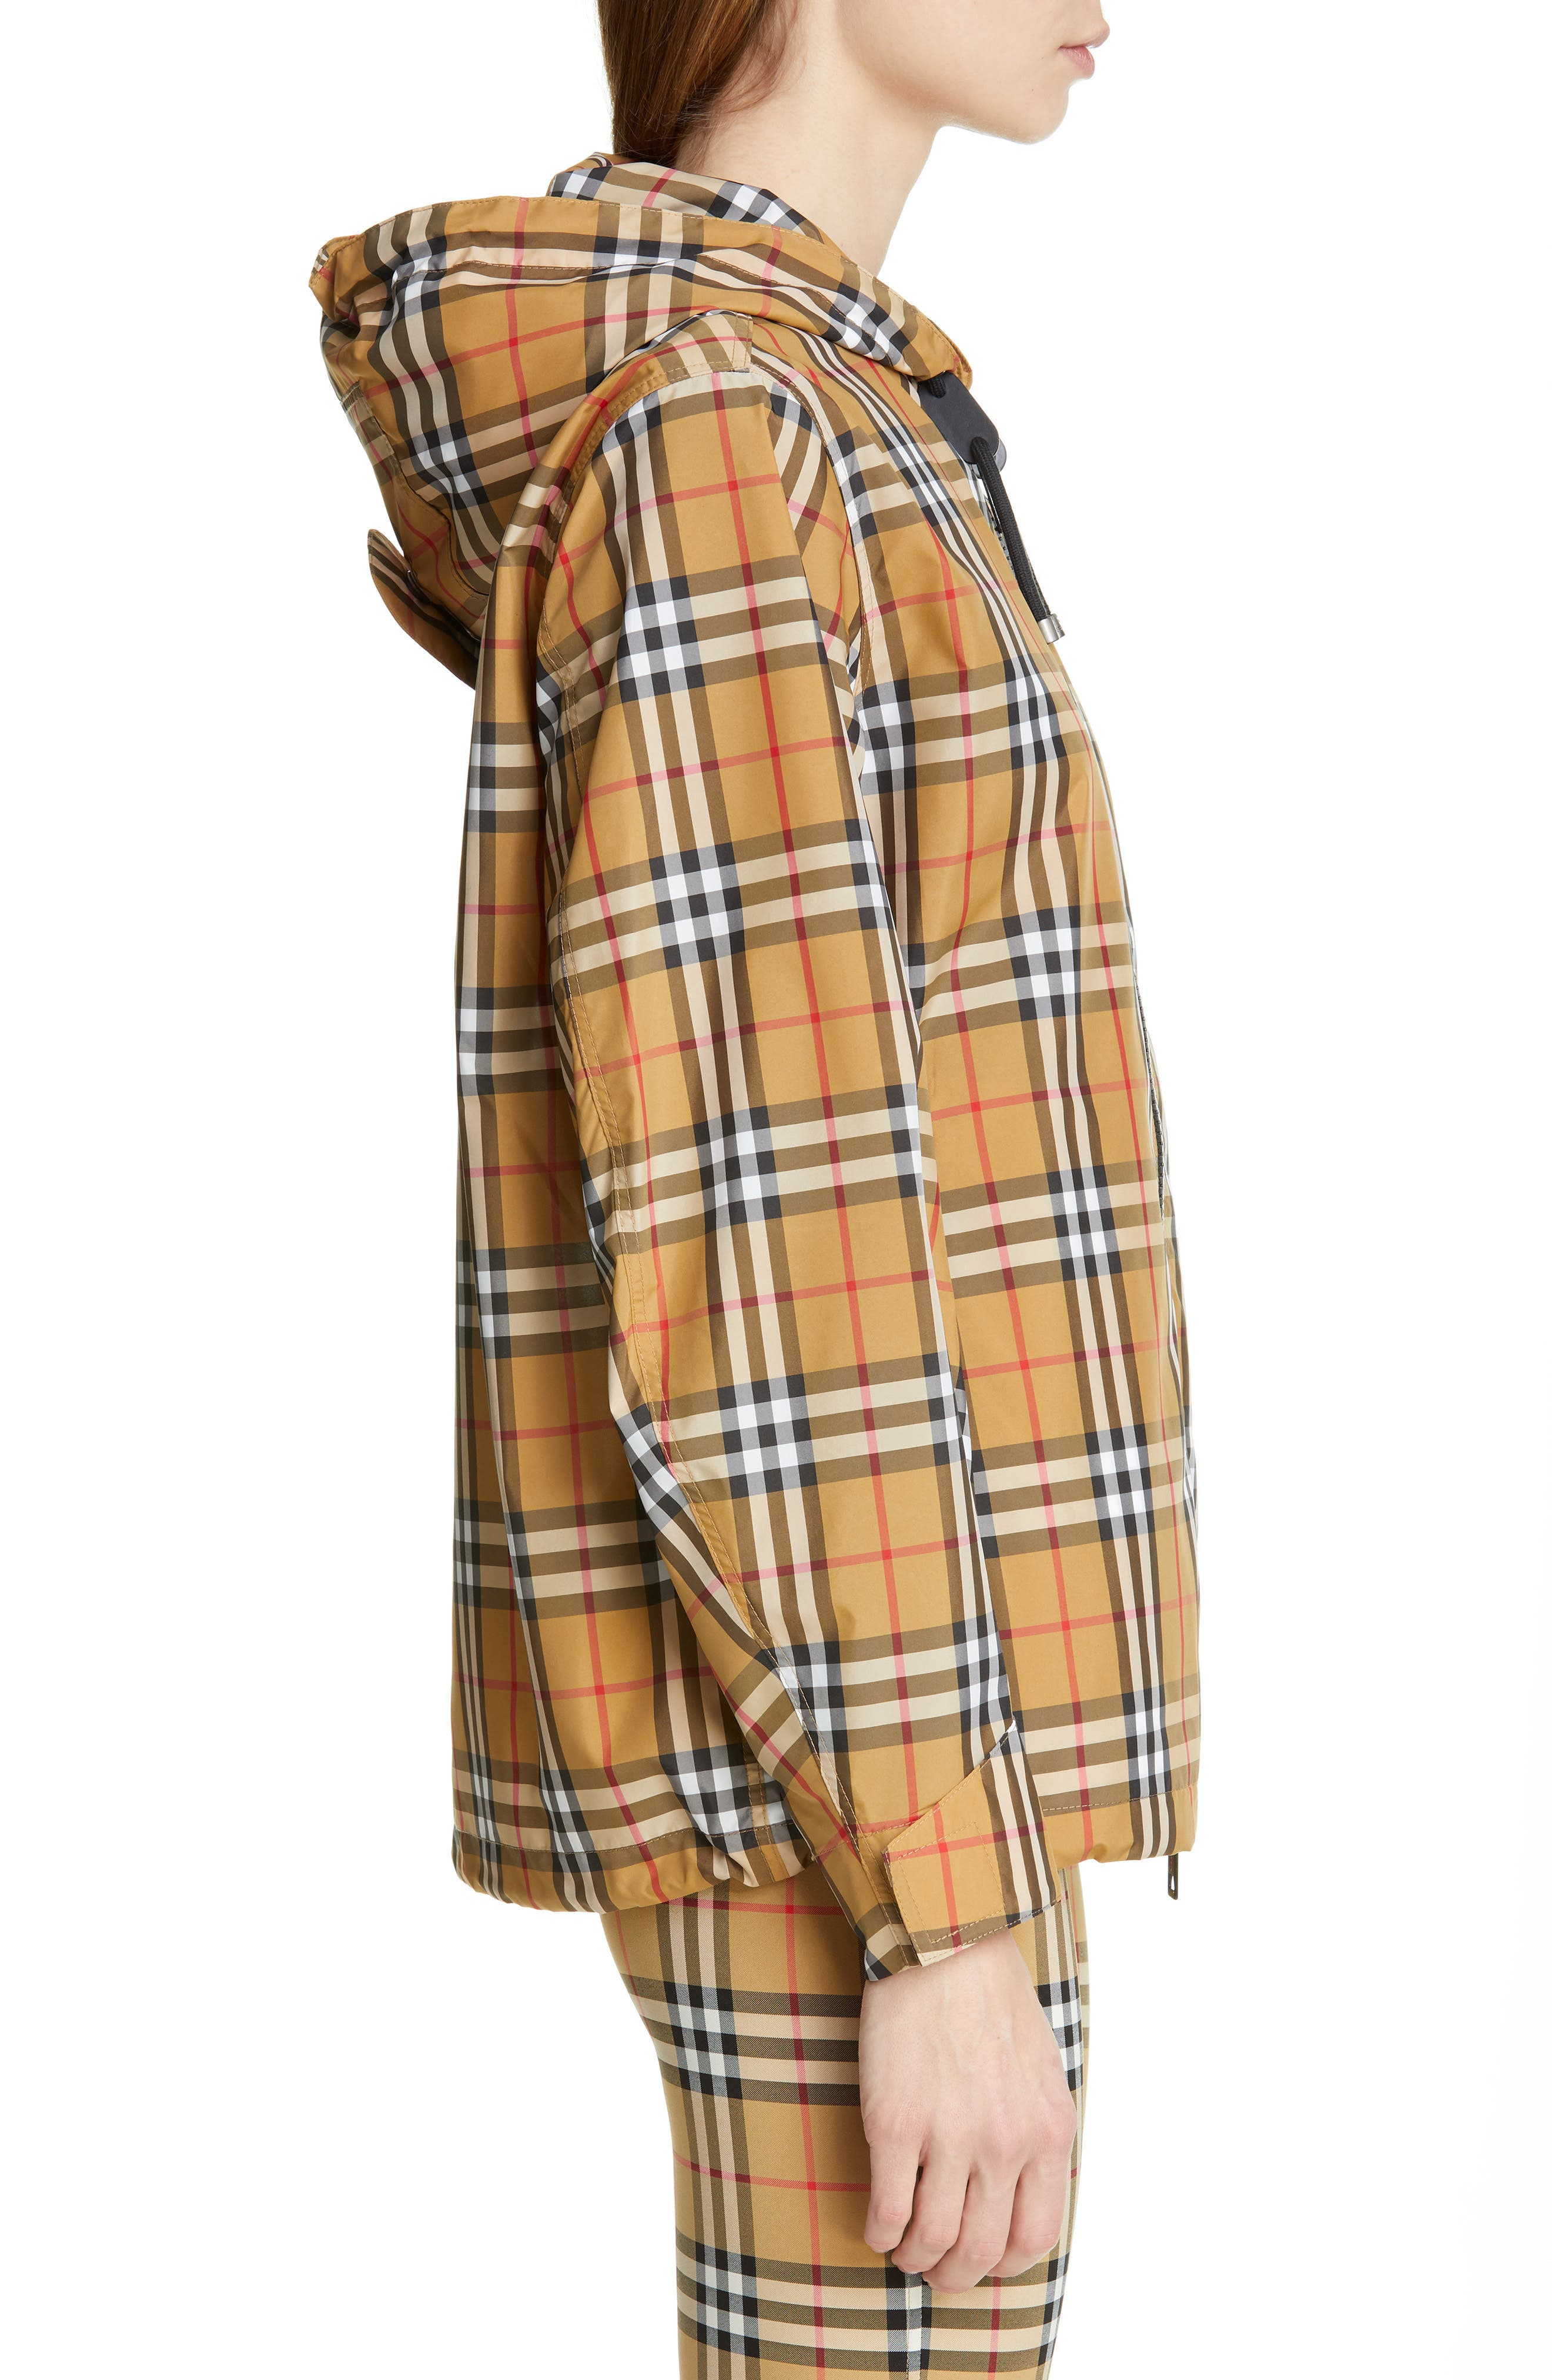 BURBERRY, Winchester Vintage Check Hooded Rain Jacket, Alternate thumbnail 4, color, ANTIQUE YEL IP CHK